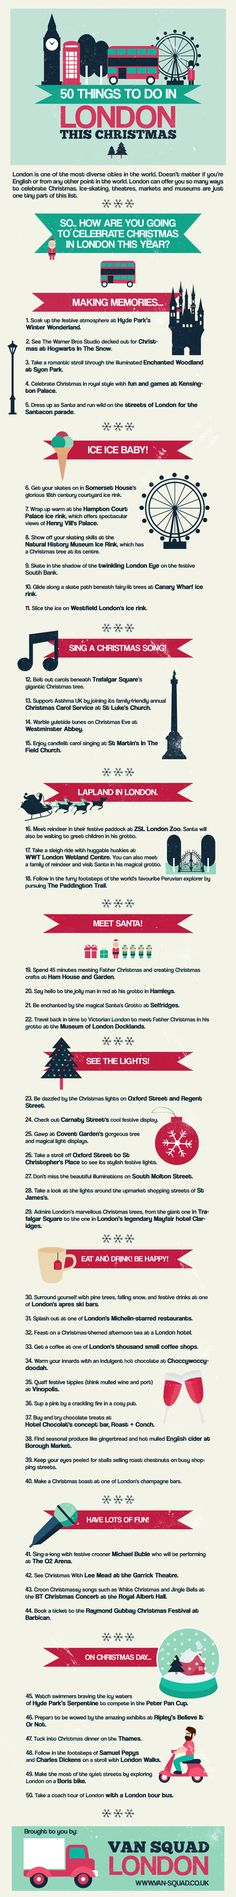 Infographic: 50 Things You Can Do in London This Christmas